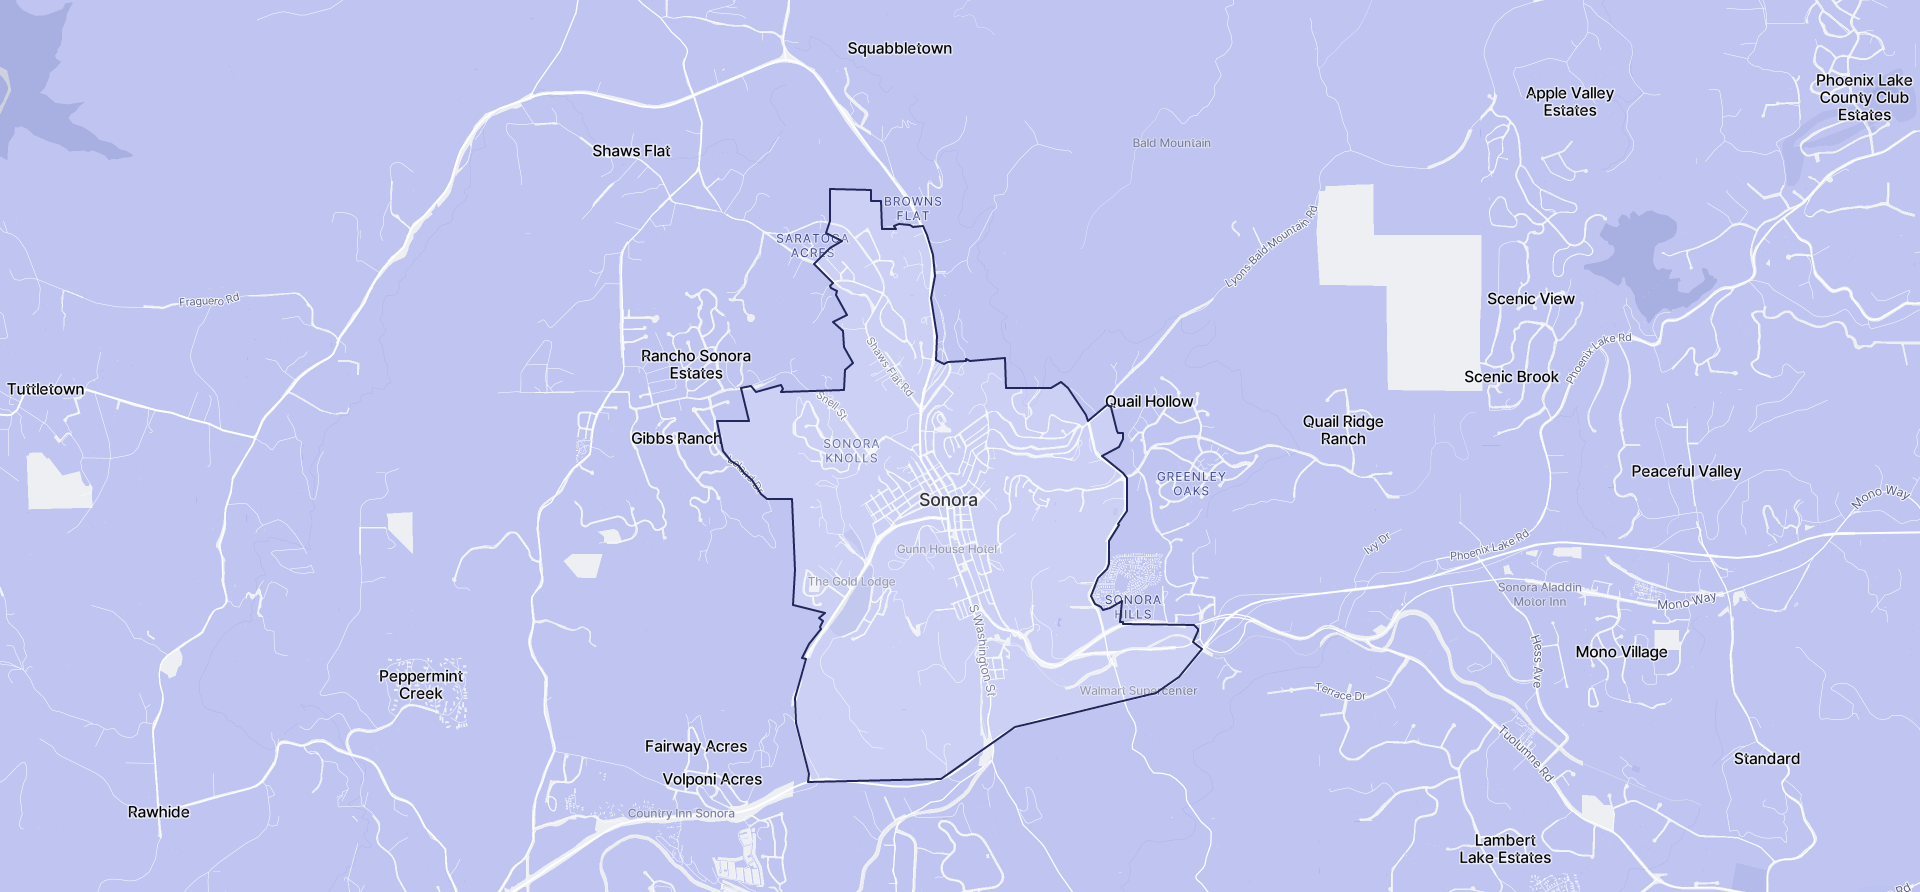 Image of Sonora boundaries on a map.